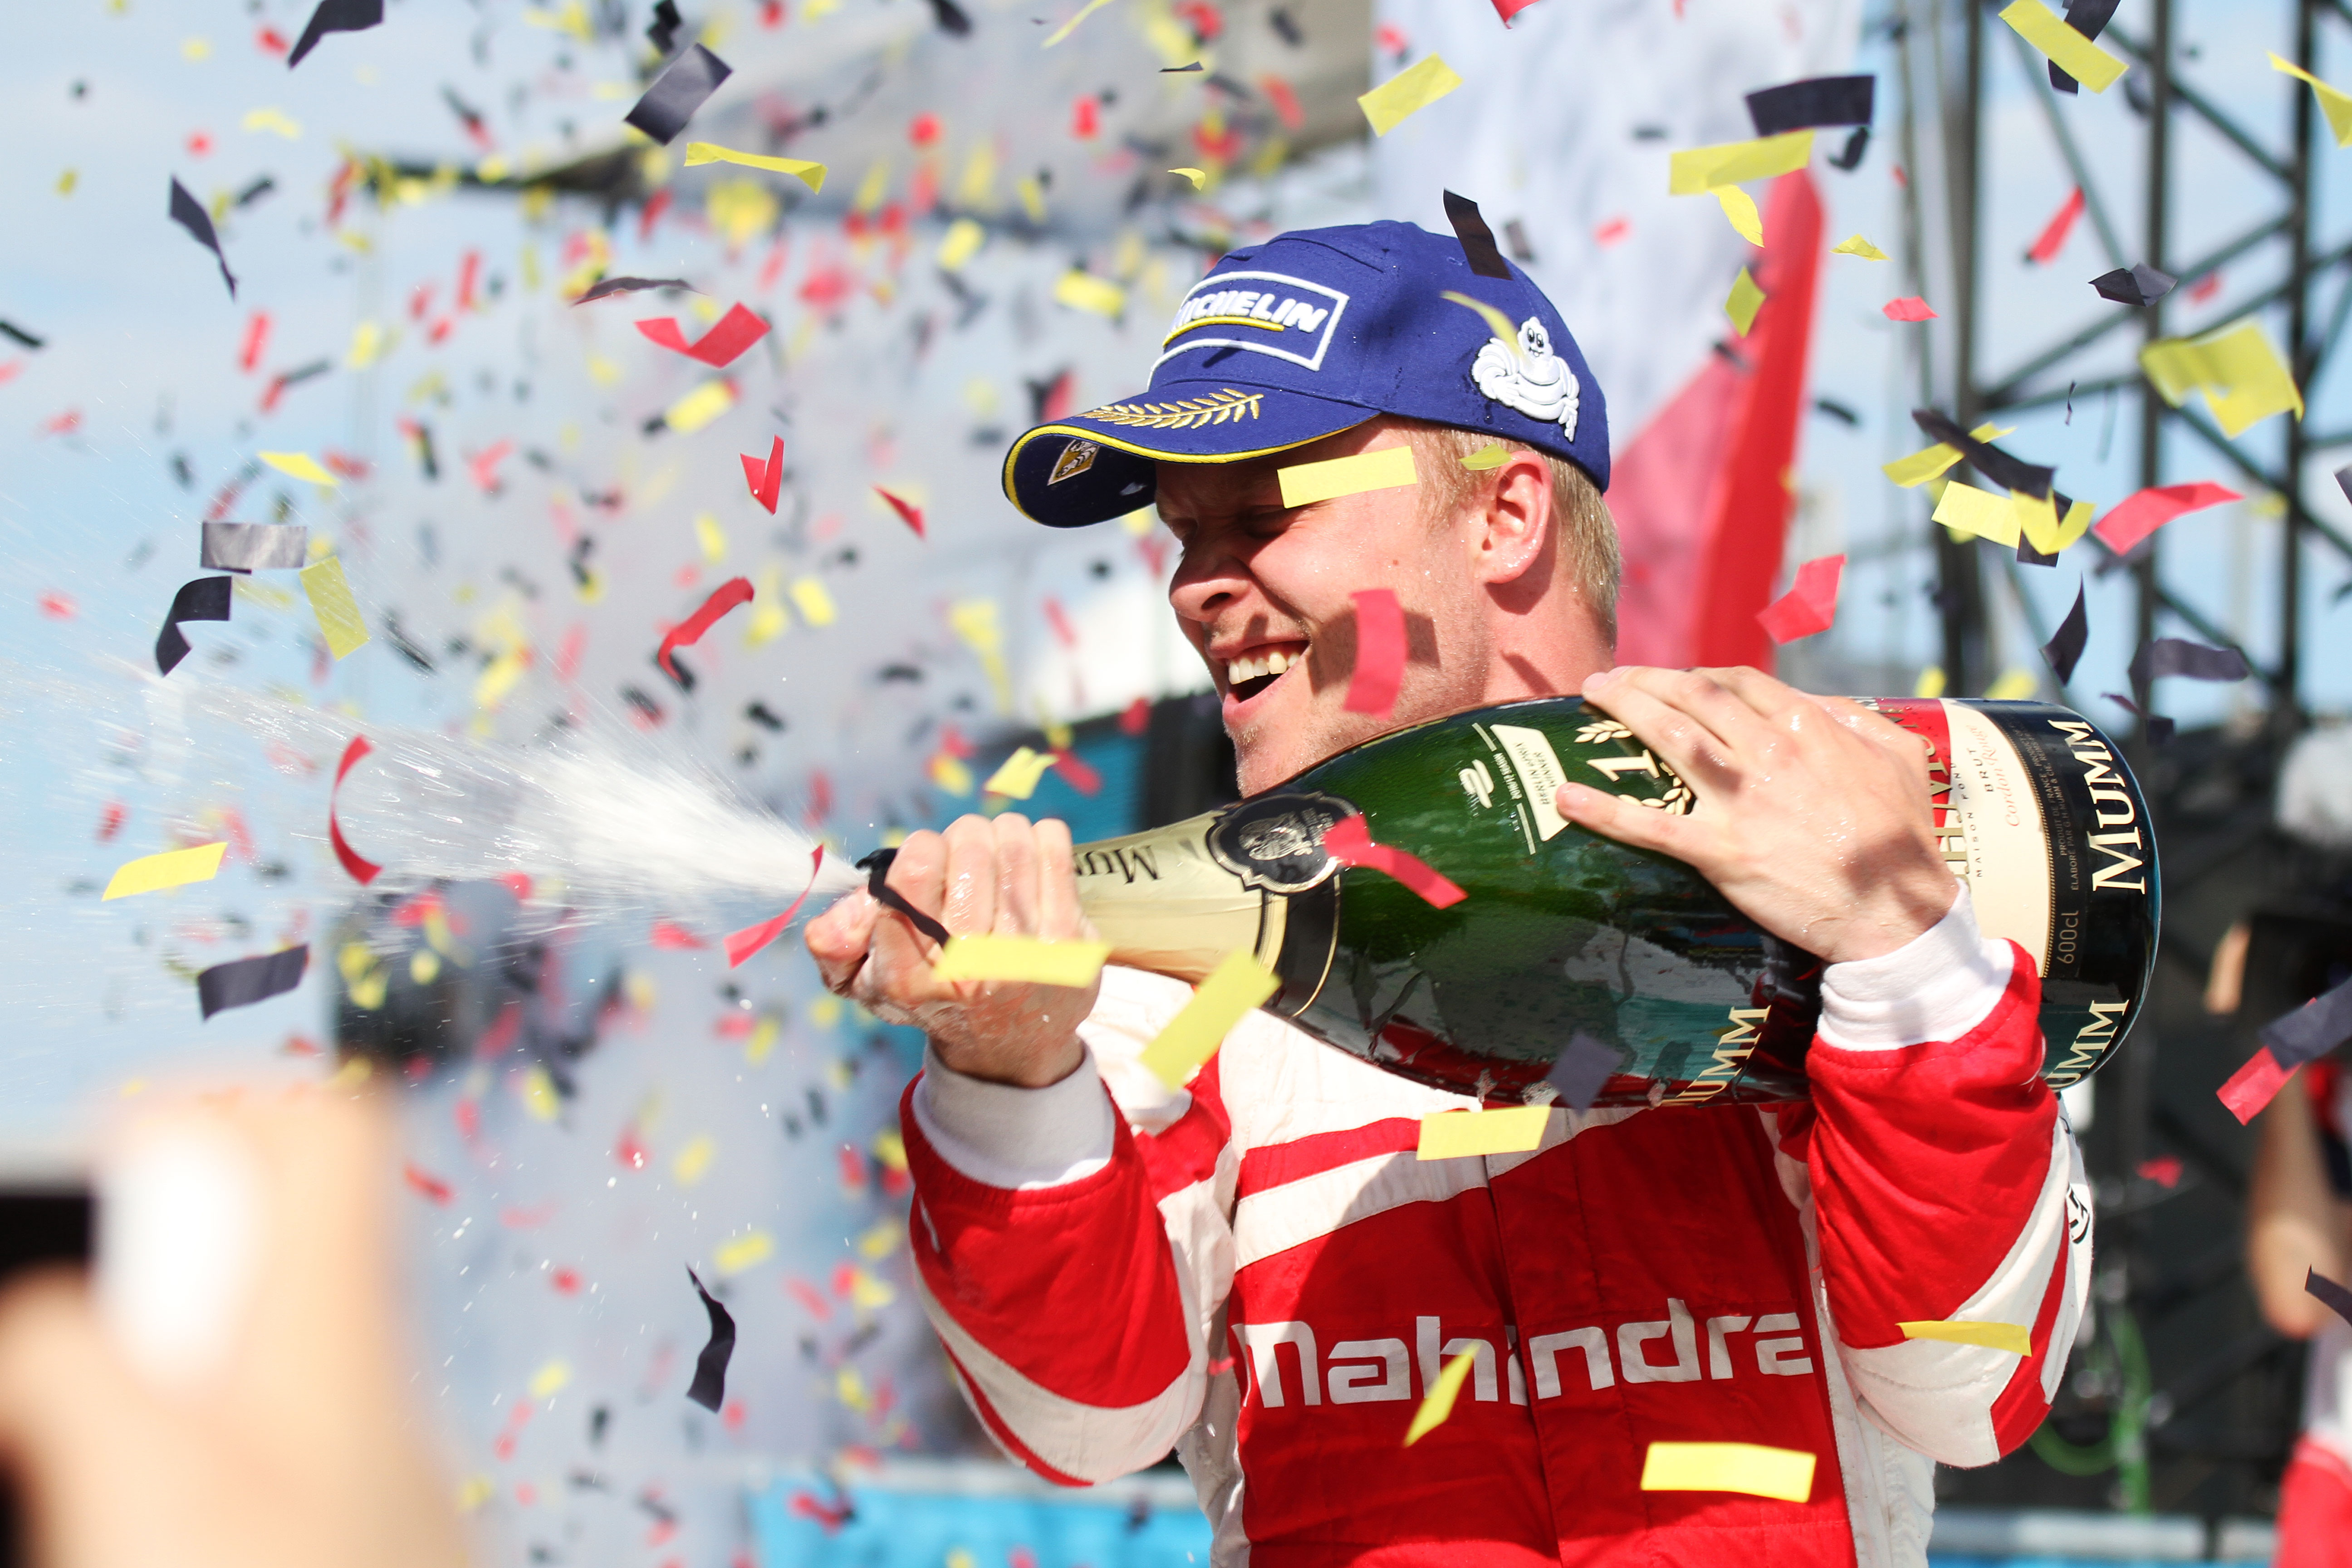 First Formula E victory